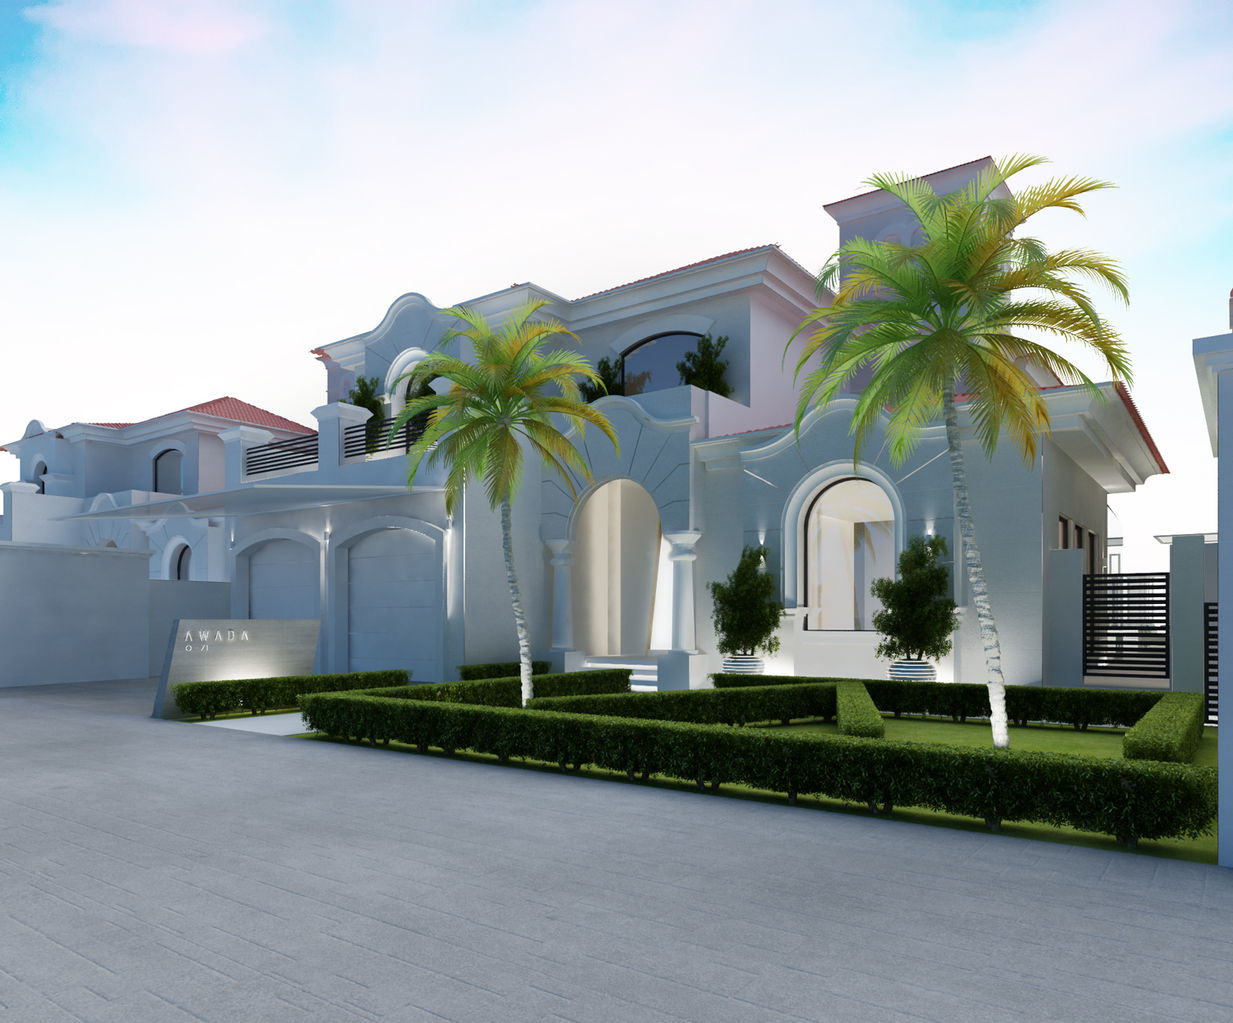 Ions design interior design dubai interior designer uae for Villas exterior design pictures